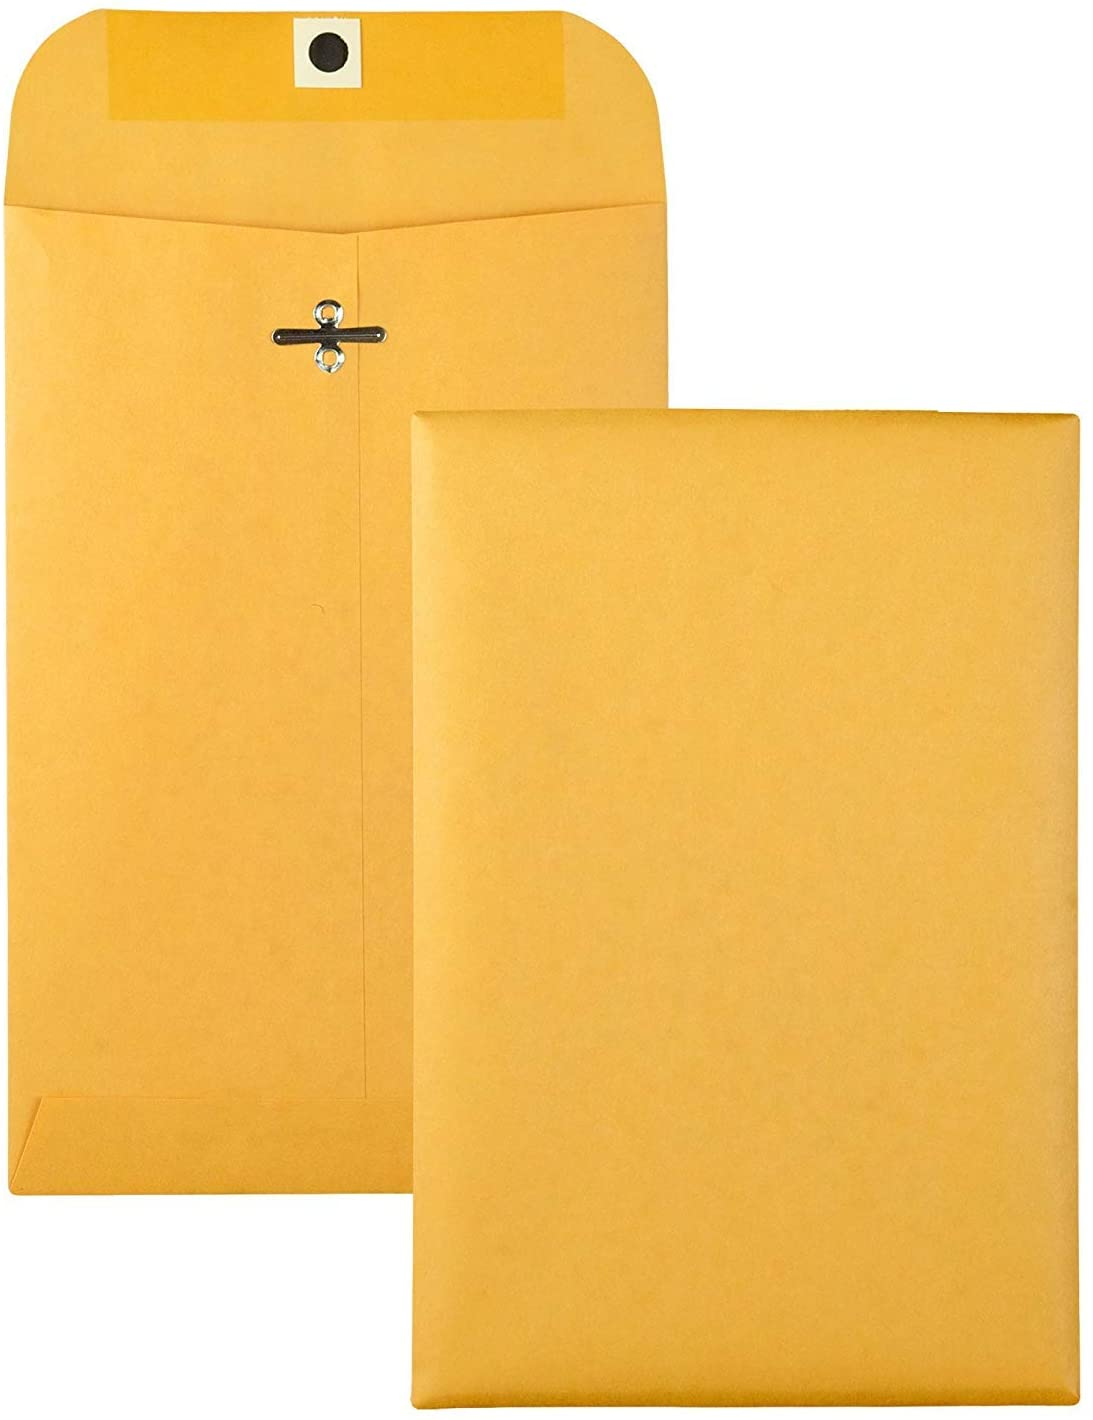 Brown Kraft Catalog Clasp Envelopes with Clasp Closure & Gummed Seal, 28lb Heavyweight Paper Envelopes, Great for Filing, Storing Or Mailing Documents, 25 Envelopes (6.5 x 9.5 inches)